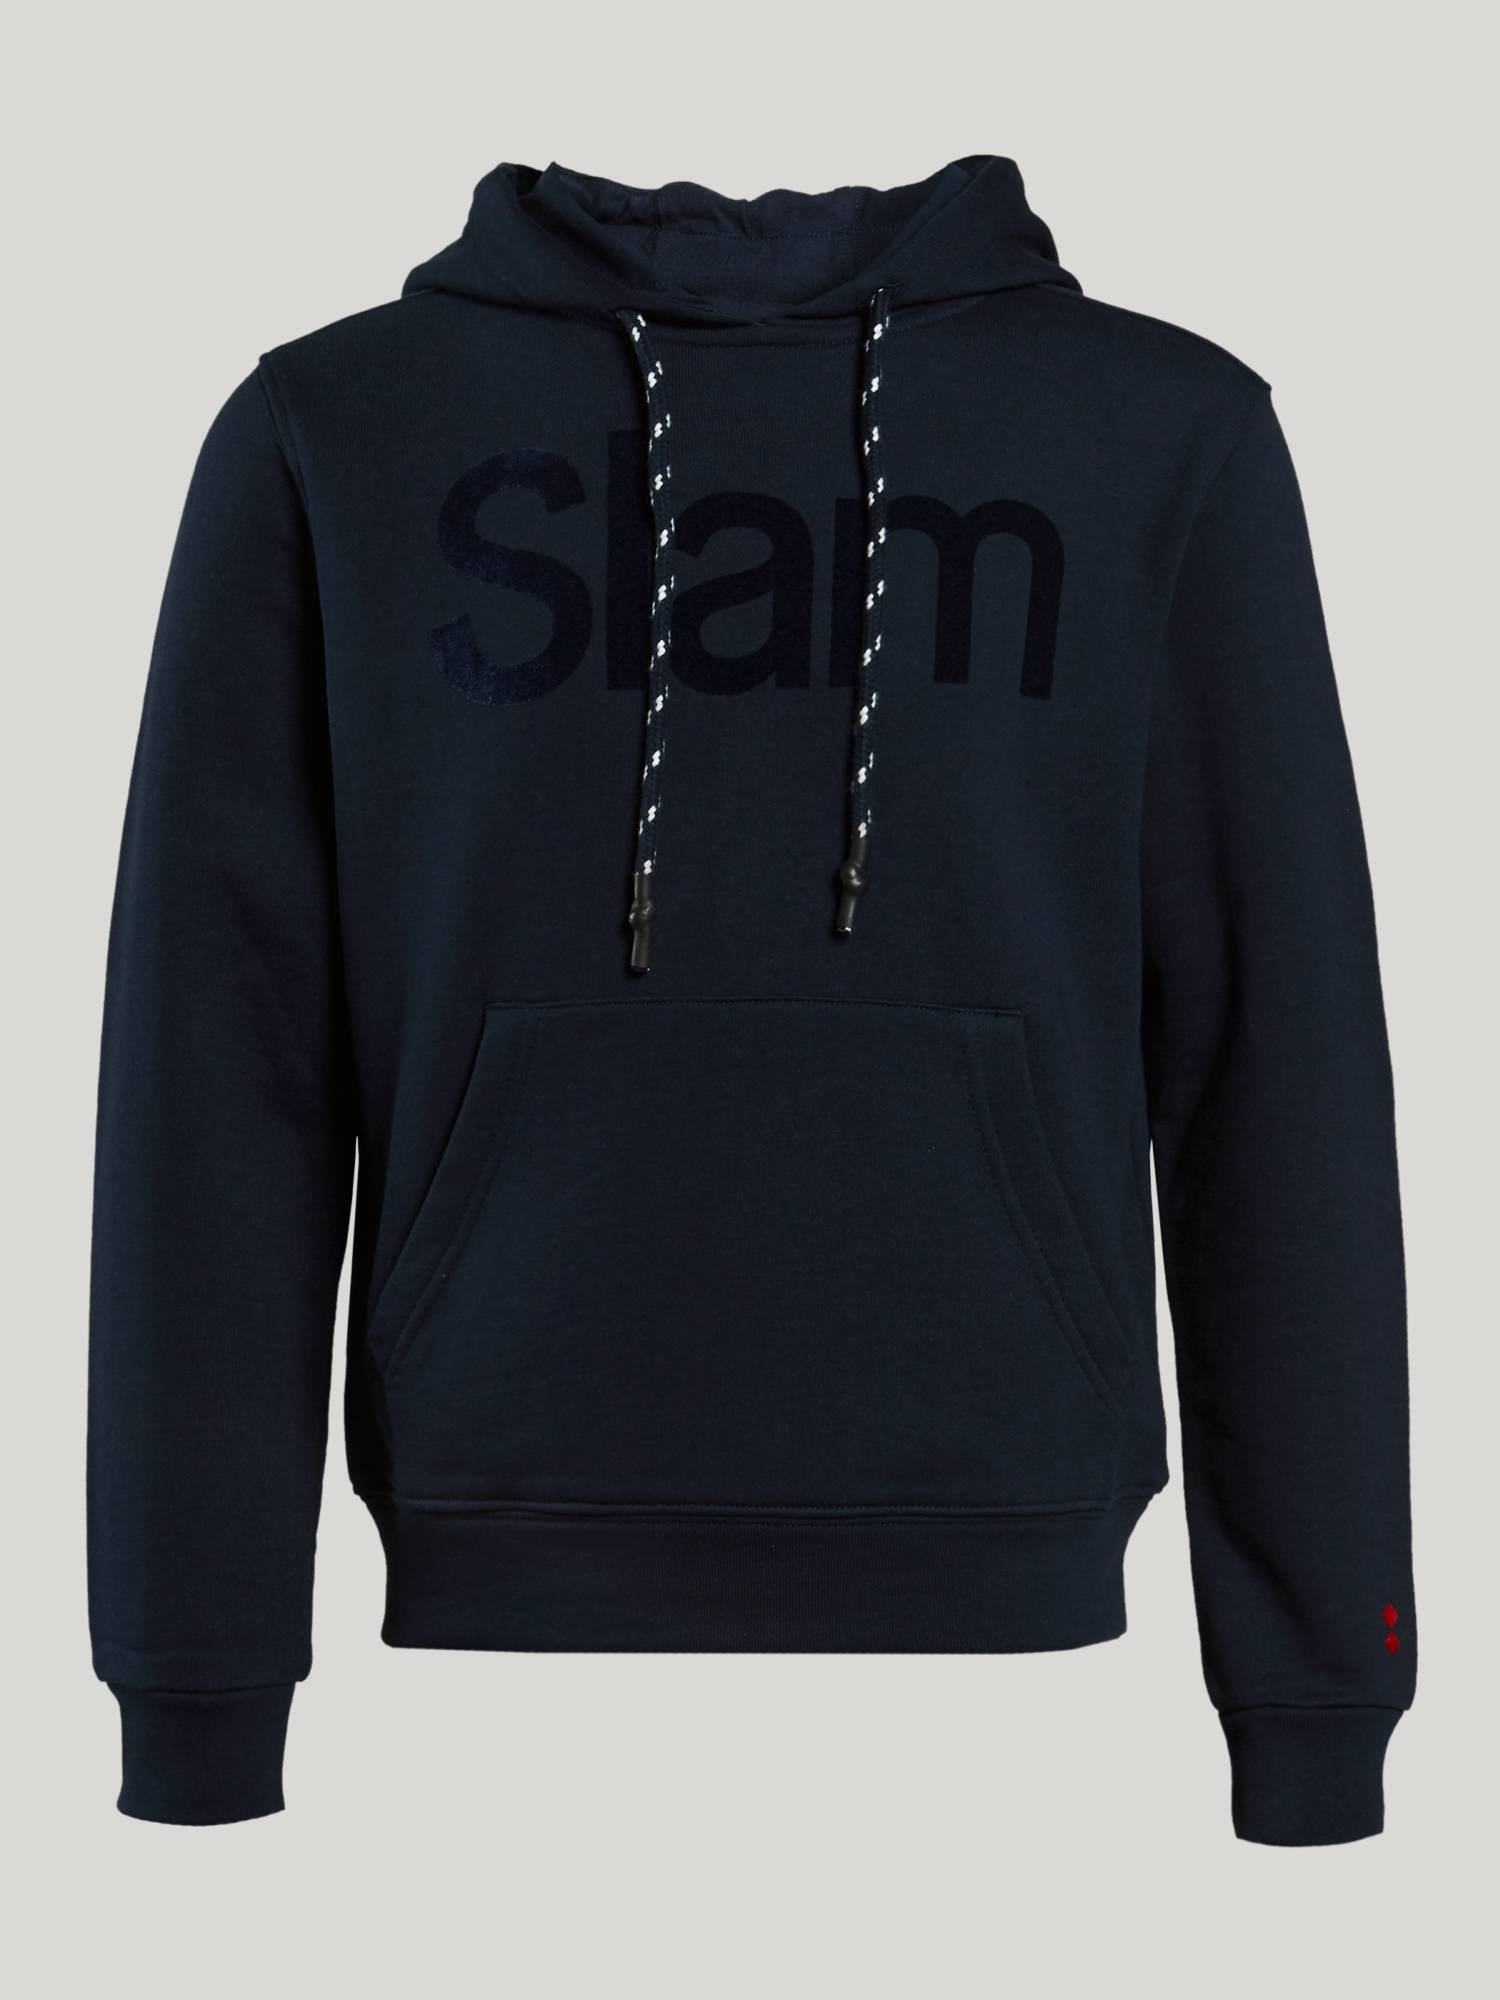 SWEATSHIRT JR A92 - Navy